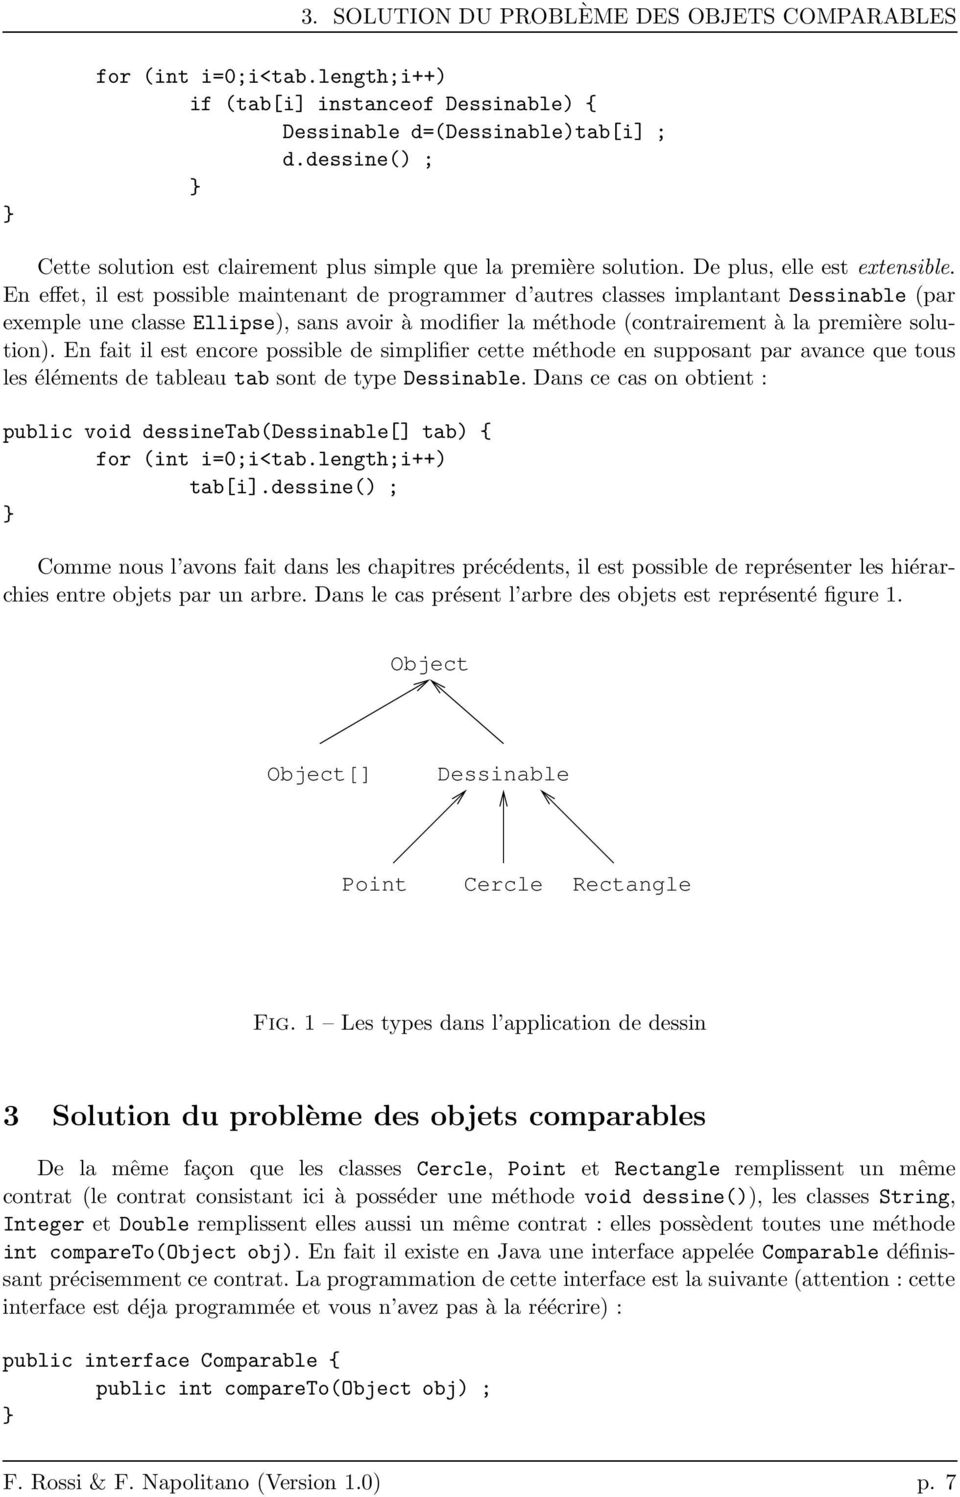 En effet, il est possible maintenant de programmer d autres classes implantant Dessinable (par exemple une classe Ellipse), sans avoir à modifier la méthode (contrairement à la première solution).